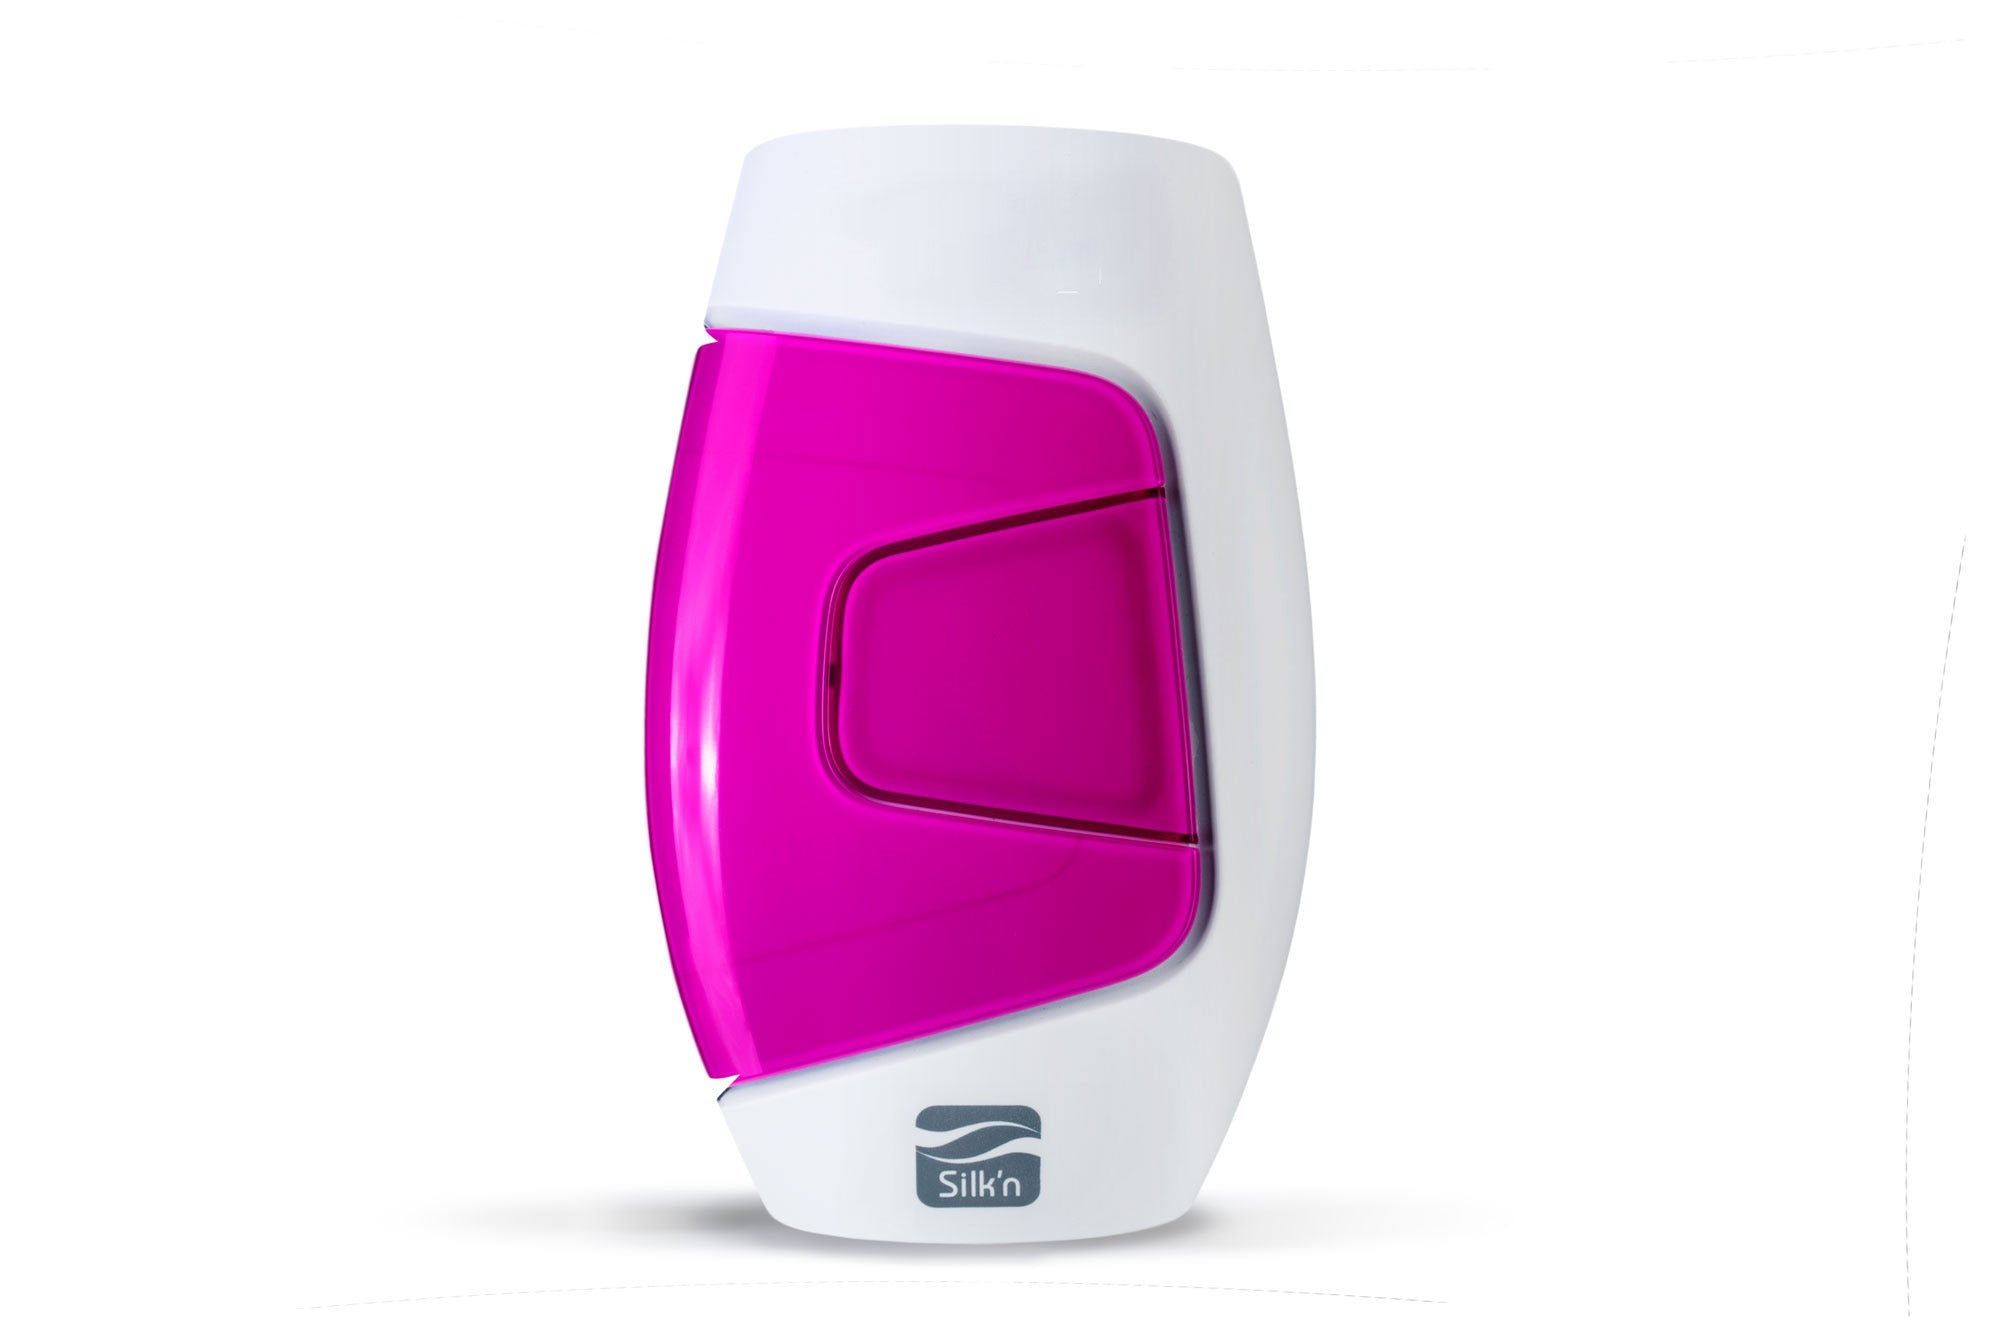 Silkn_Flash&Go_Compact_Glide_Hair_Removal_Device__Pink